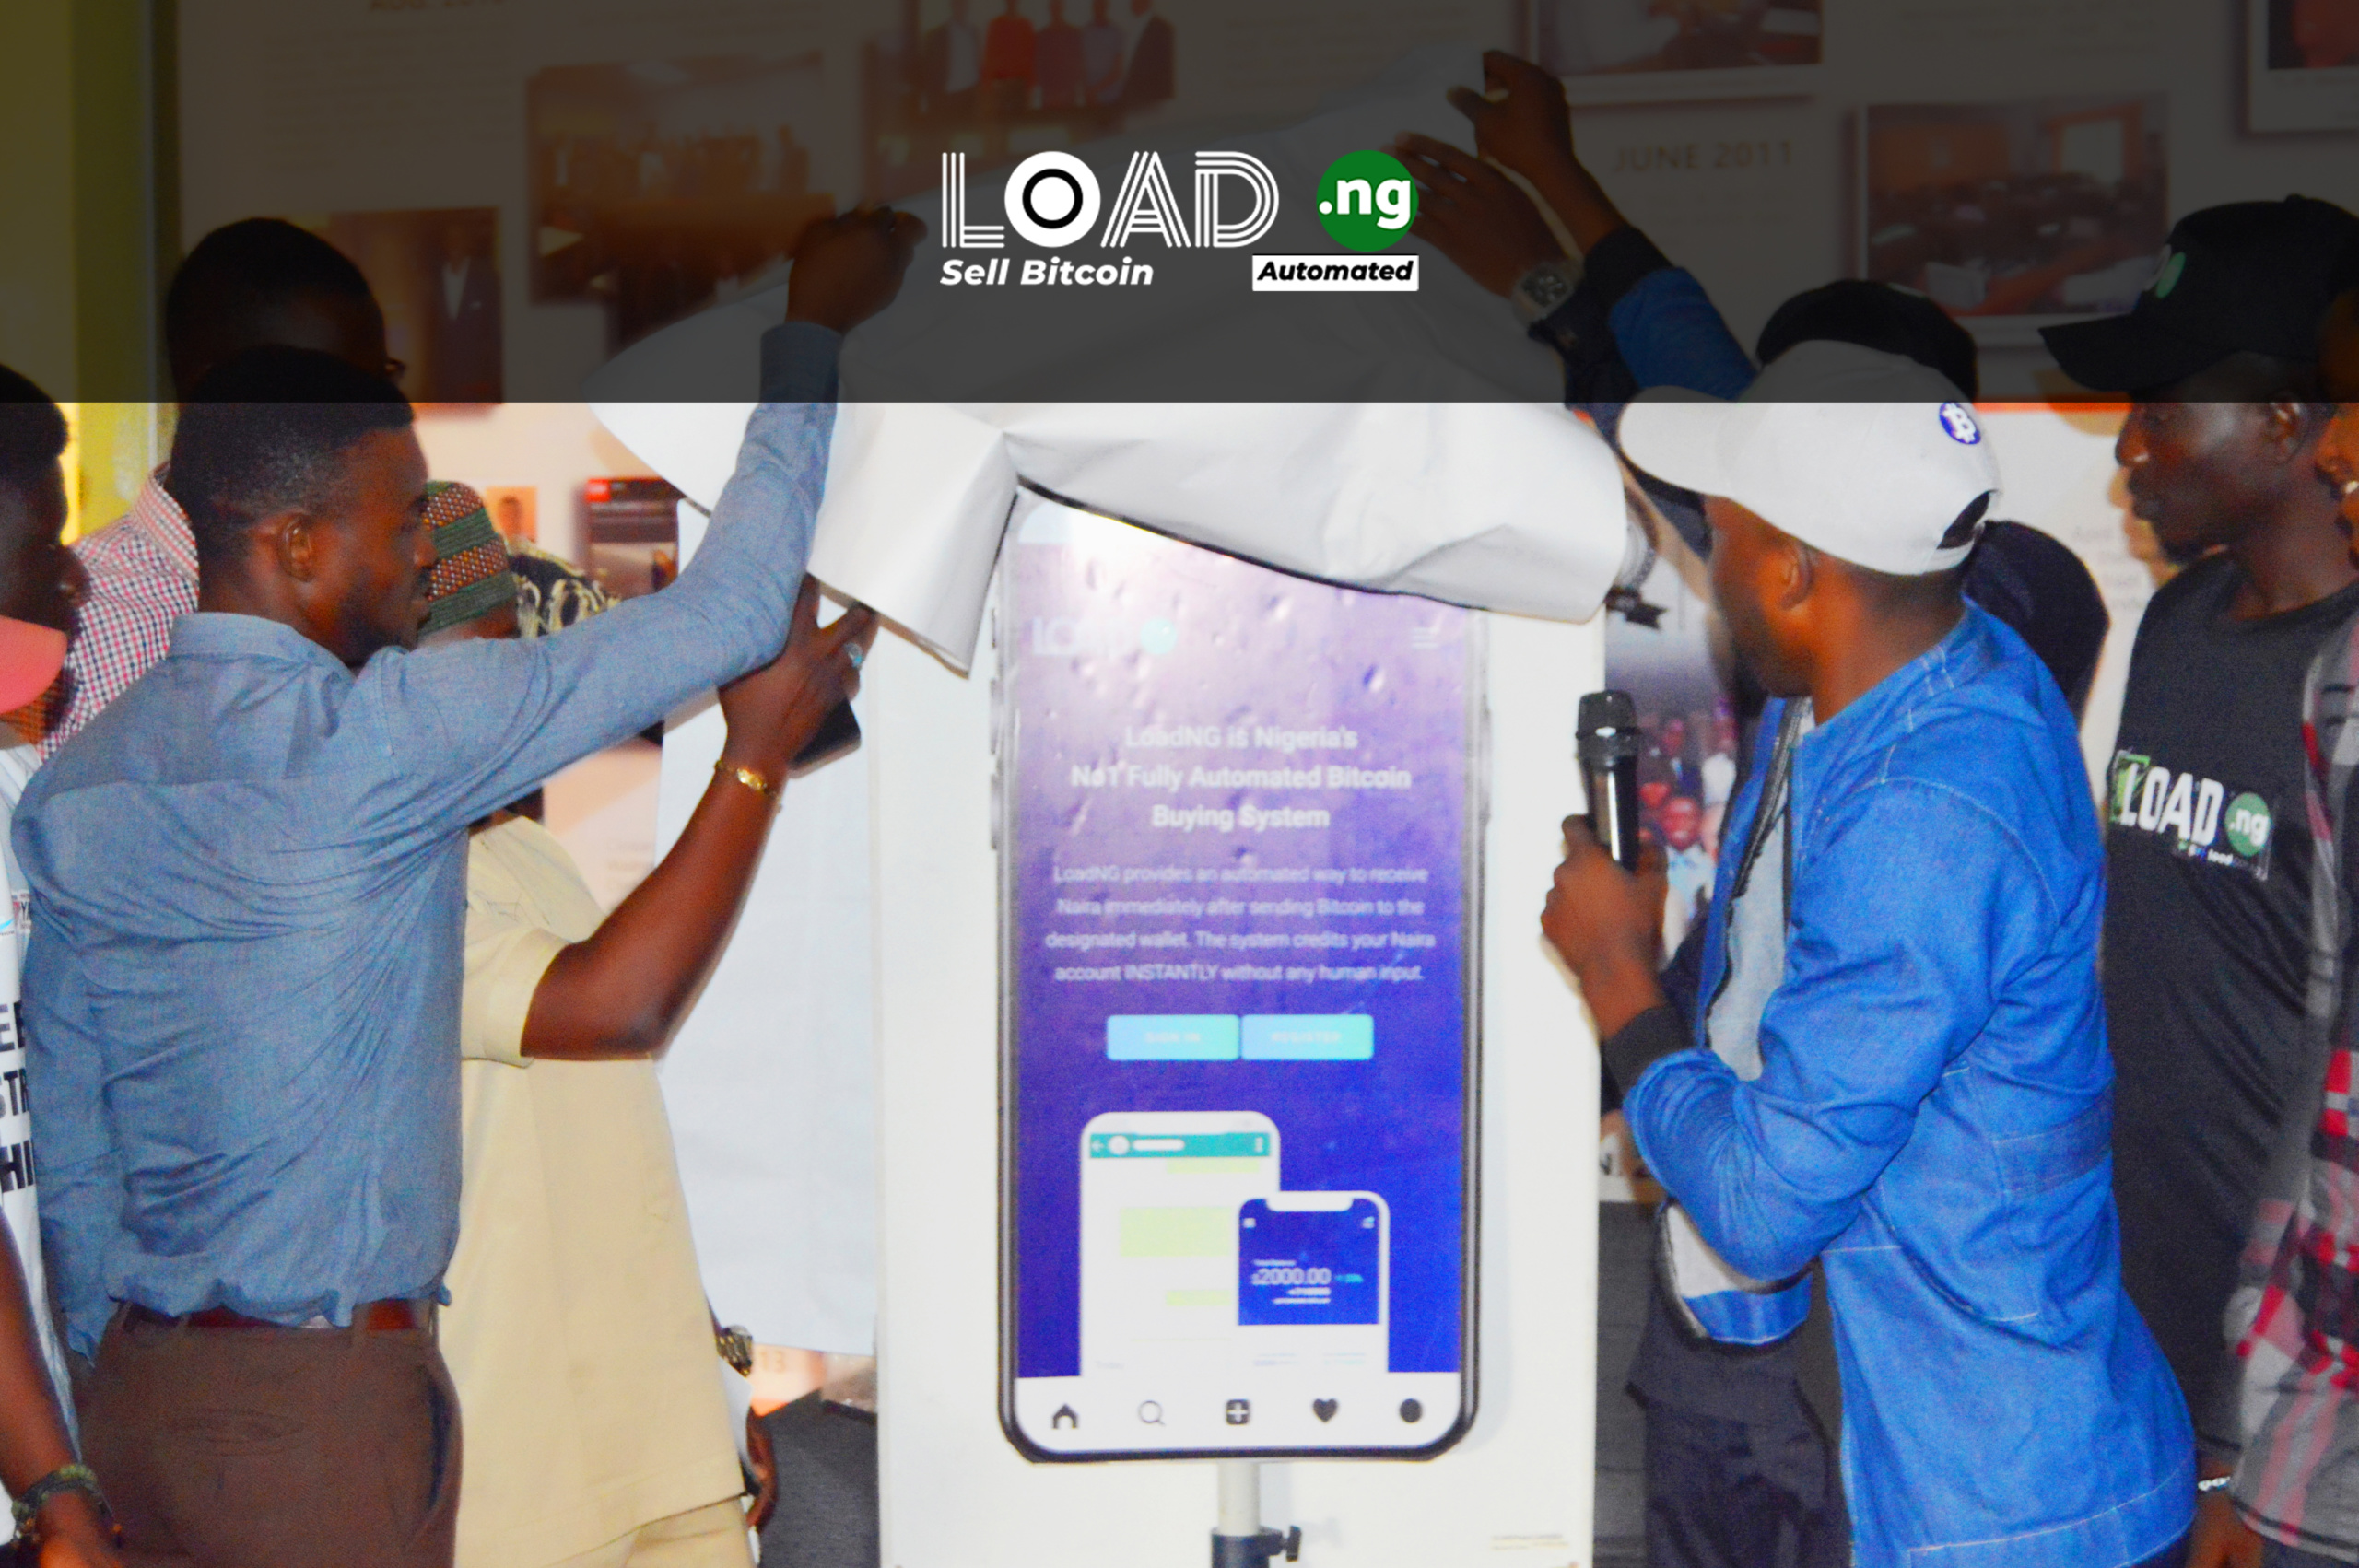 Firm Launches Innovative E-Commerce Service To Solve Bitcoin Buying Related Issues In Nigeria: LoadNG Automated Systems!